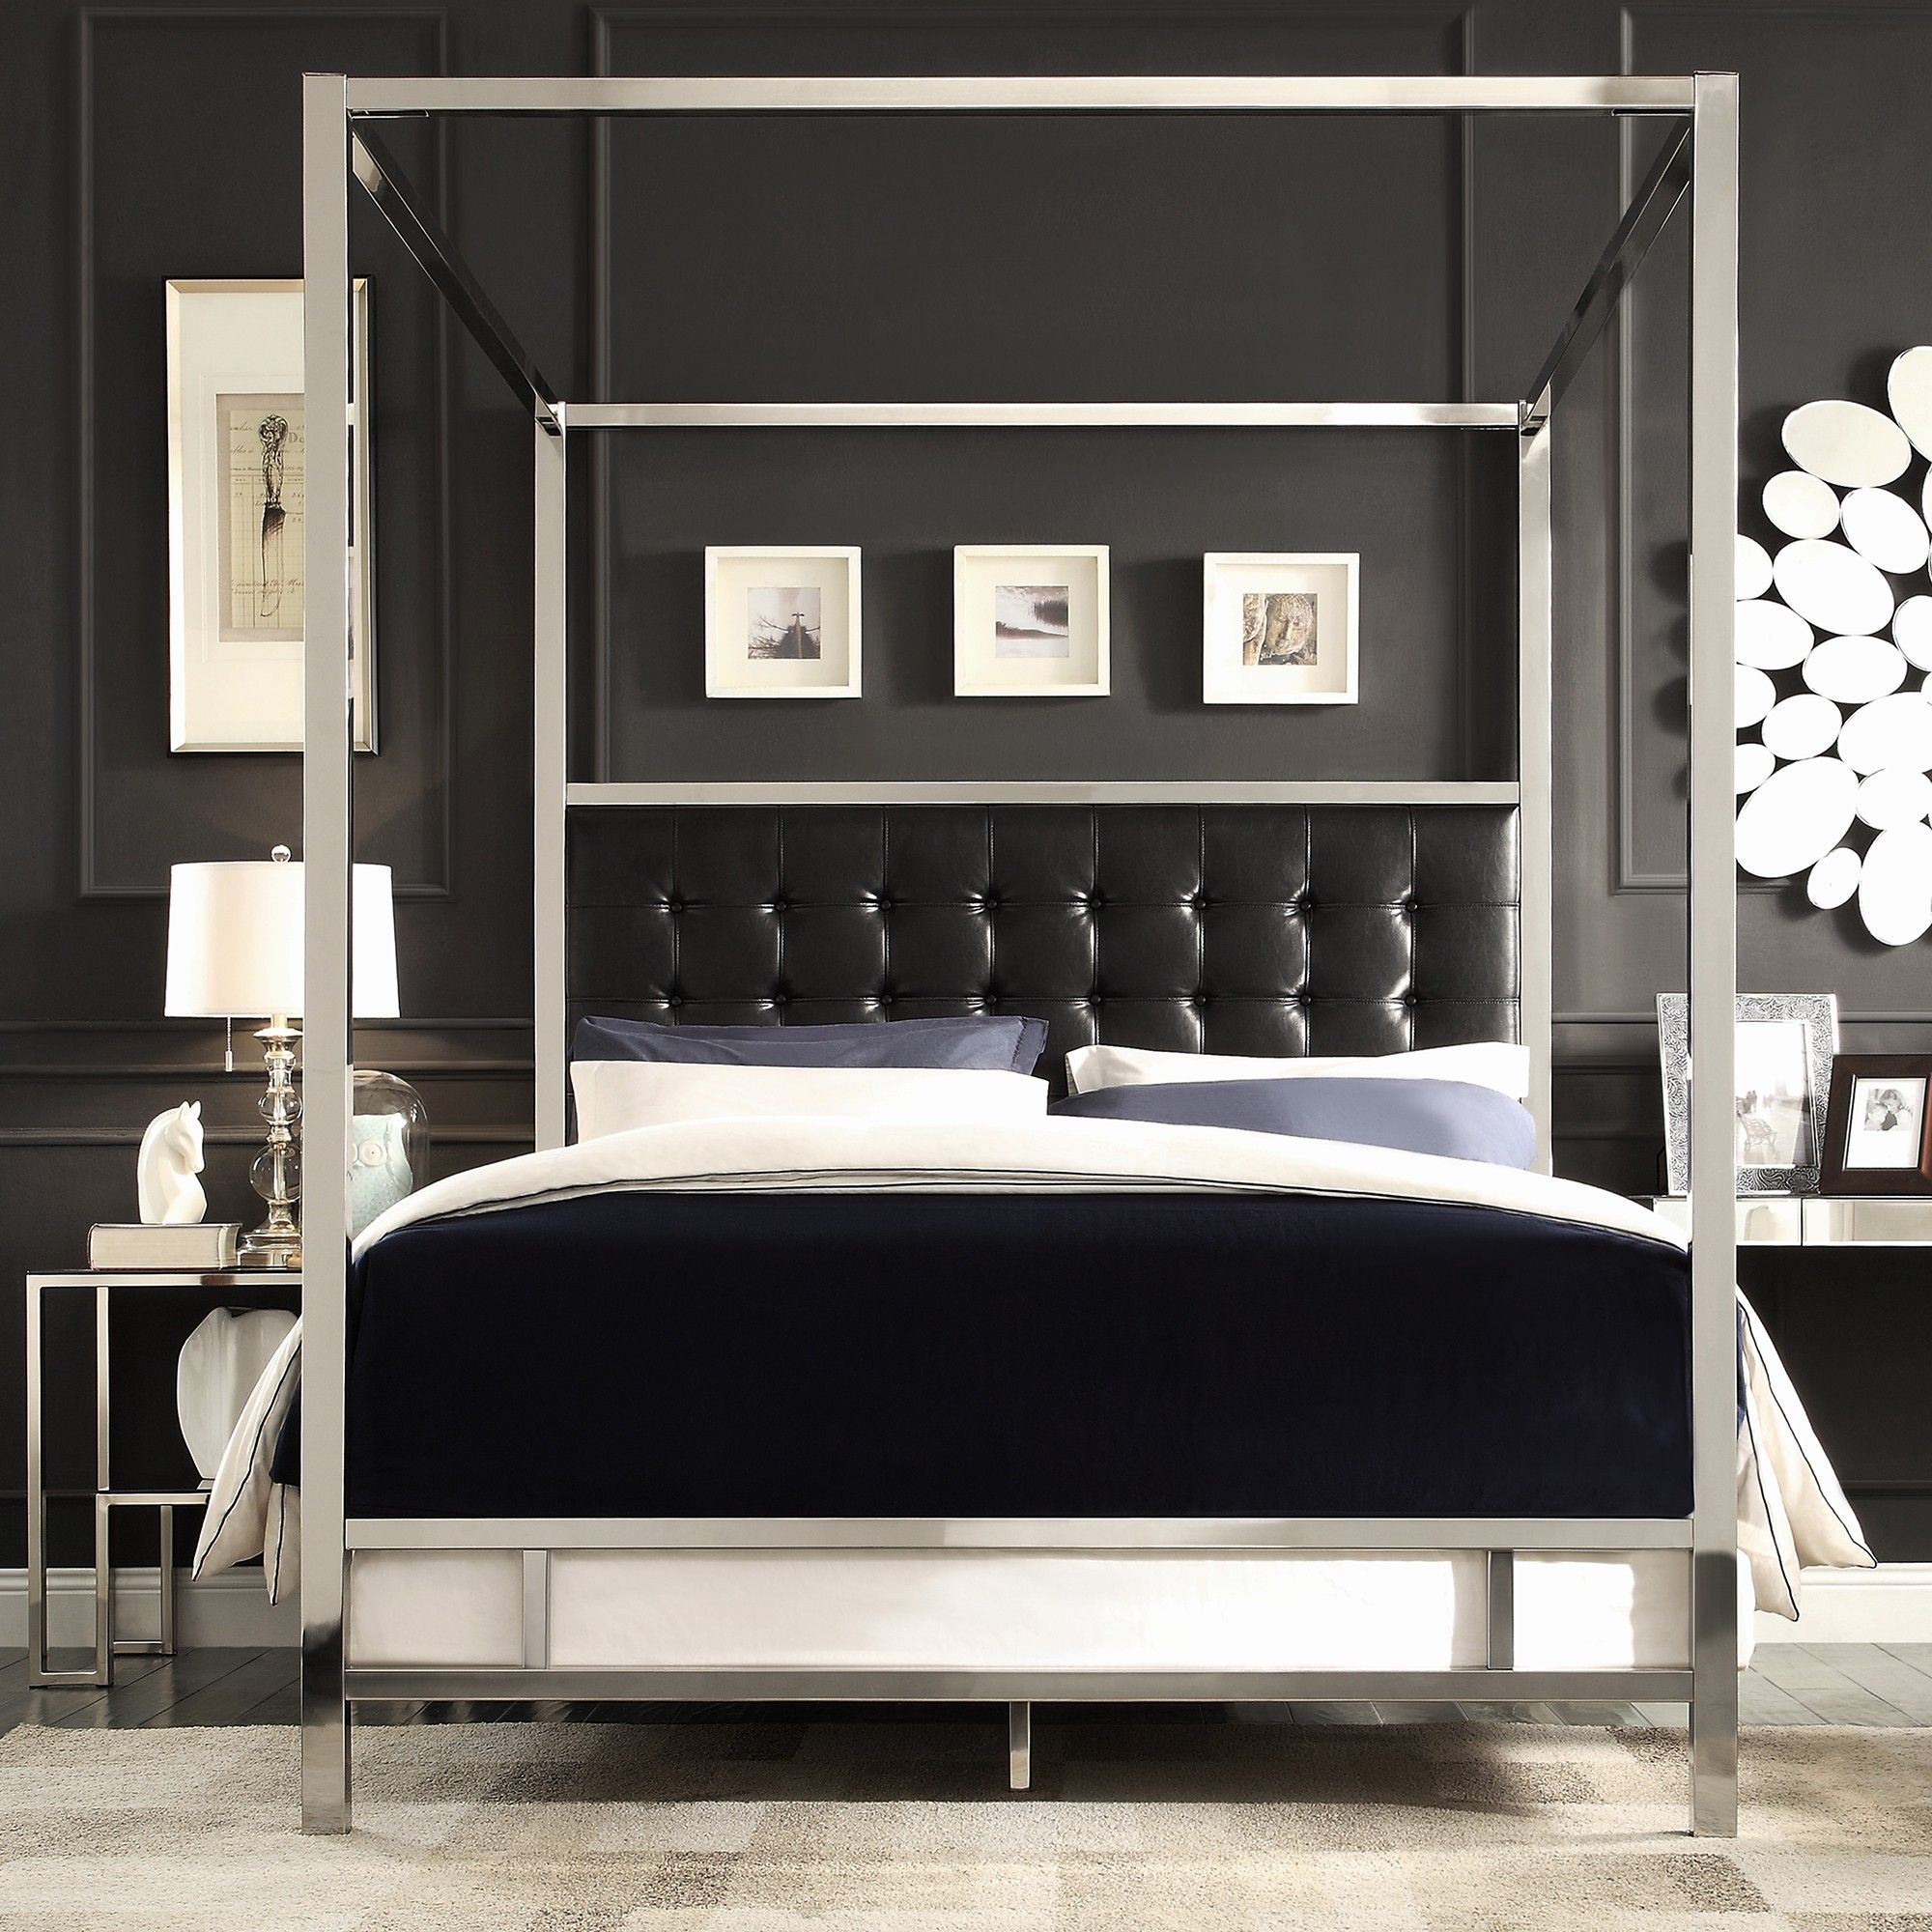 Bedroom Silver Stainless Steel Canopy Bed With Black Leather Headboard And White Bedding Bed On White Rug Captiv